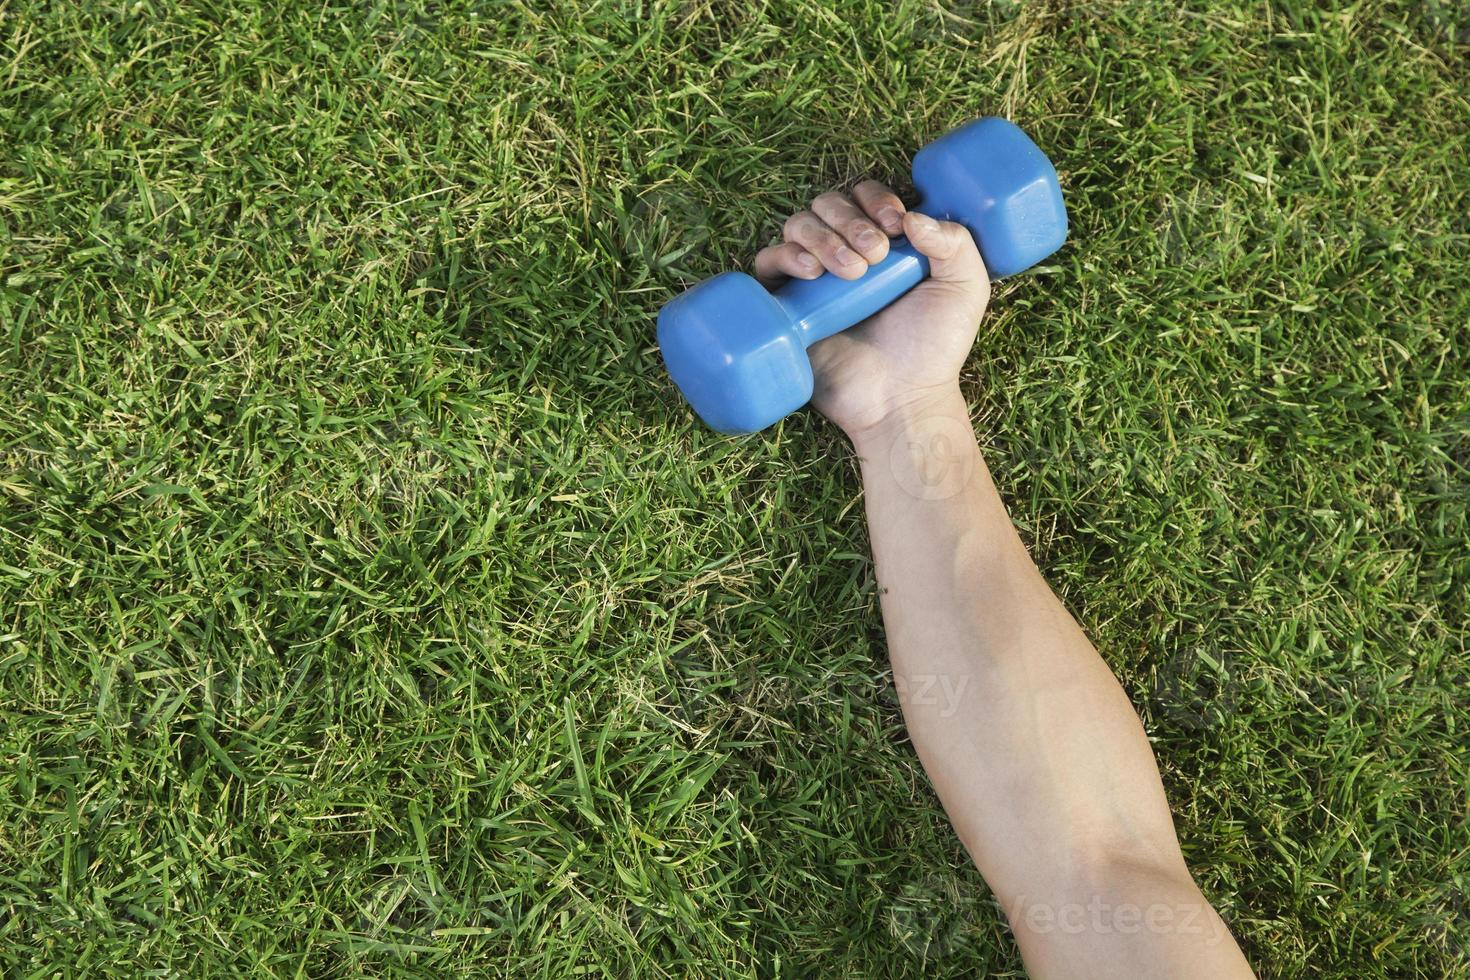 Arm with Blue Dumbbell photo